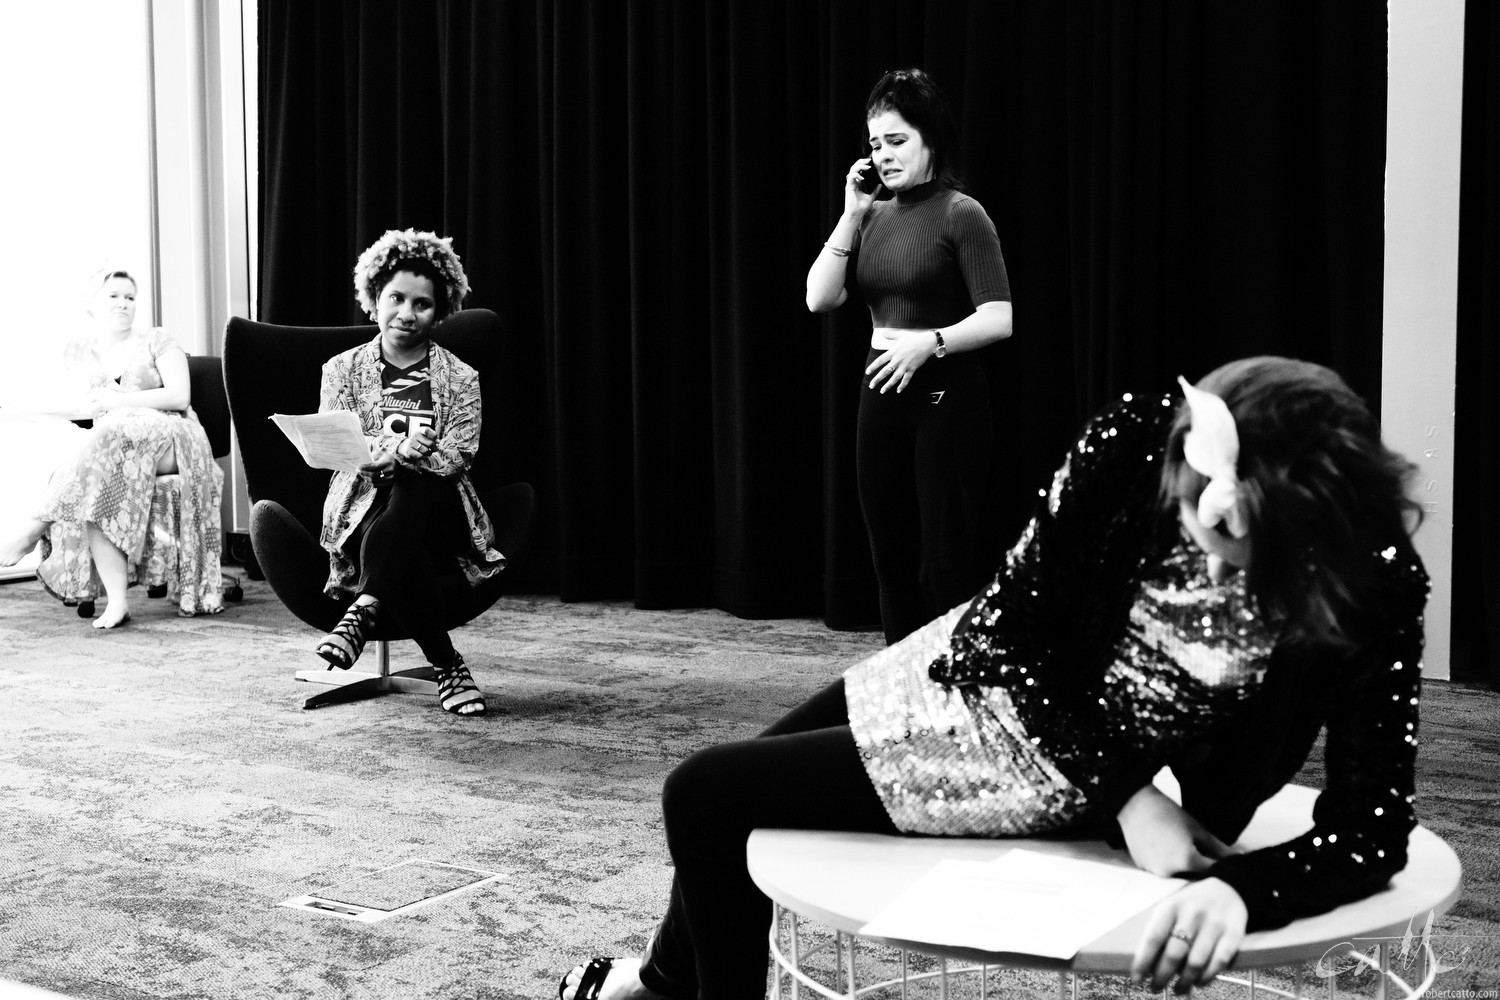 Wendy Mocke, Chloe Bayliss and Kate Cheel Morgan Maguire in rehearsal for Home Invasion (Fuji X-H1 with 16-55mm f/2.8)